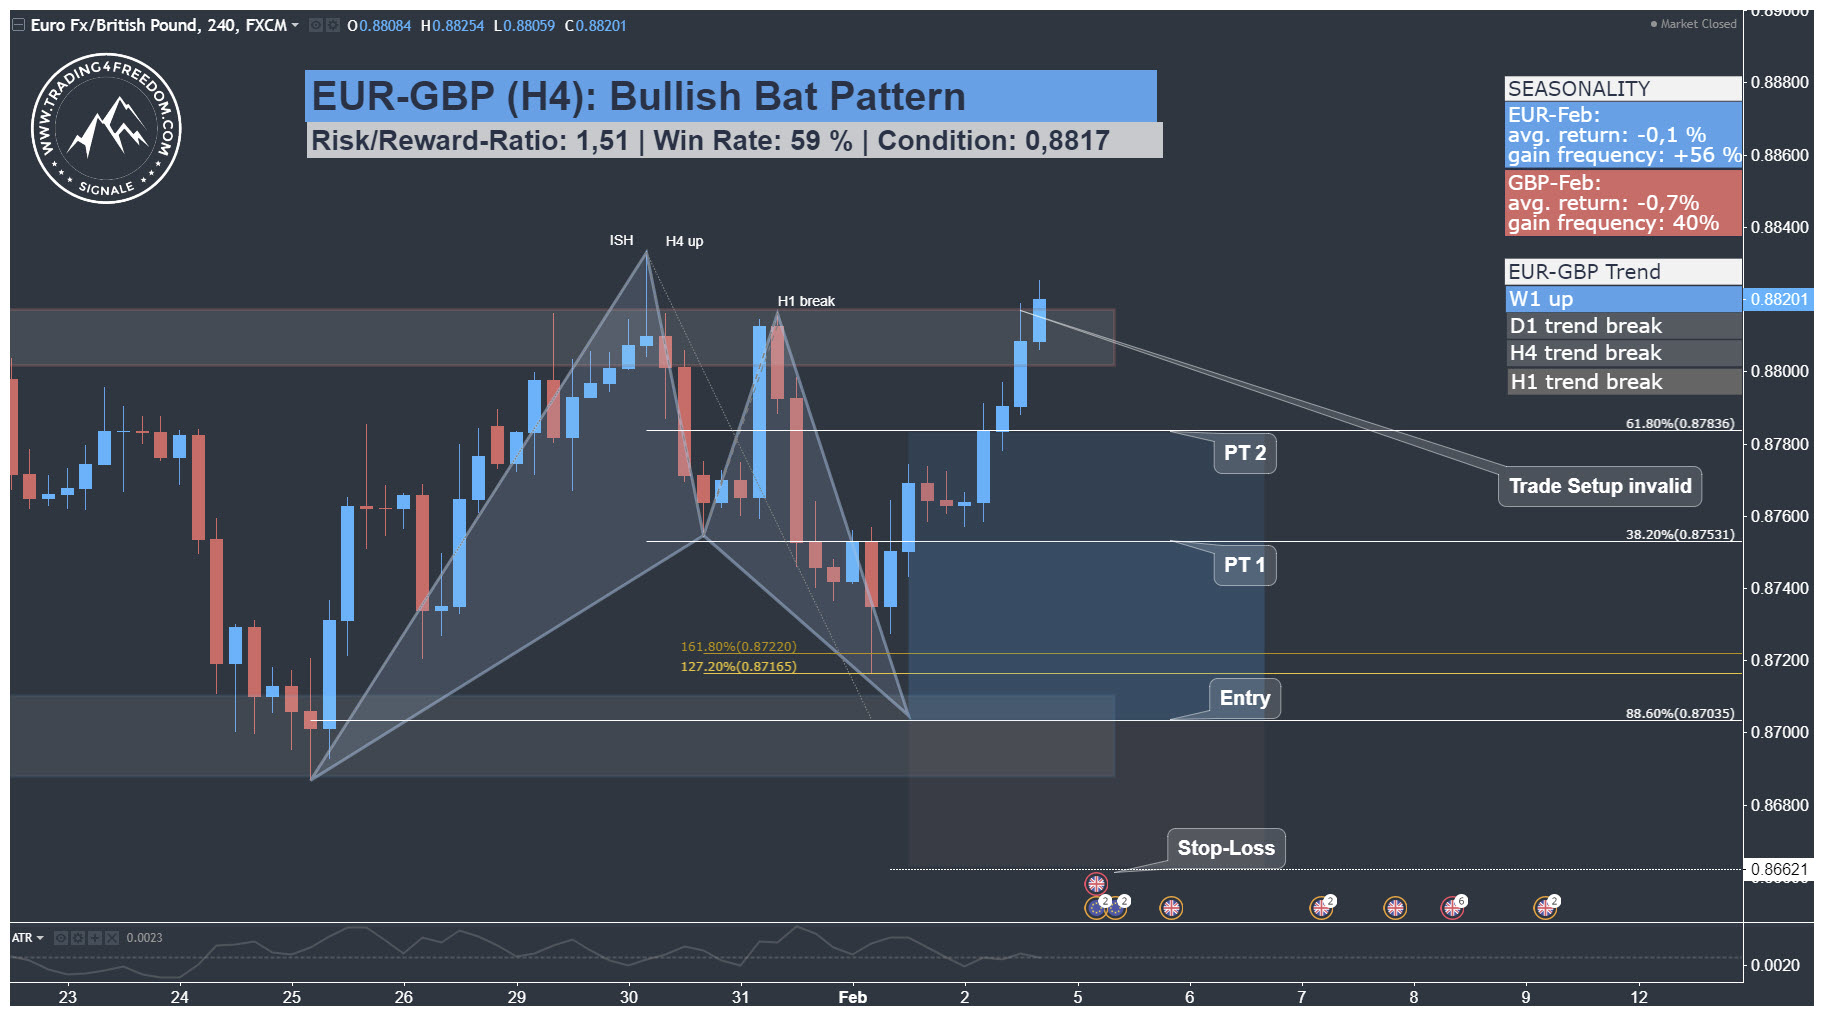 The Latest Gbp Forex News Discussion On Impact Great British Pound